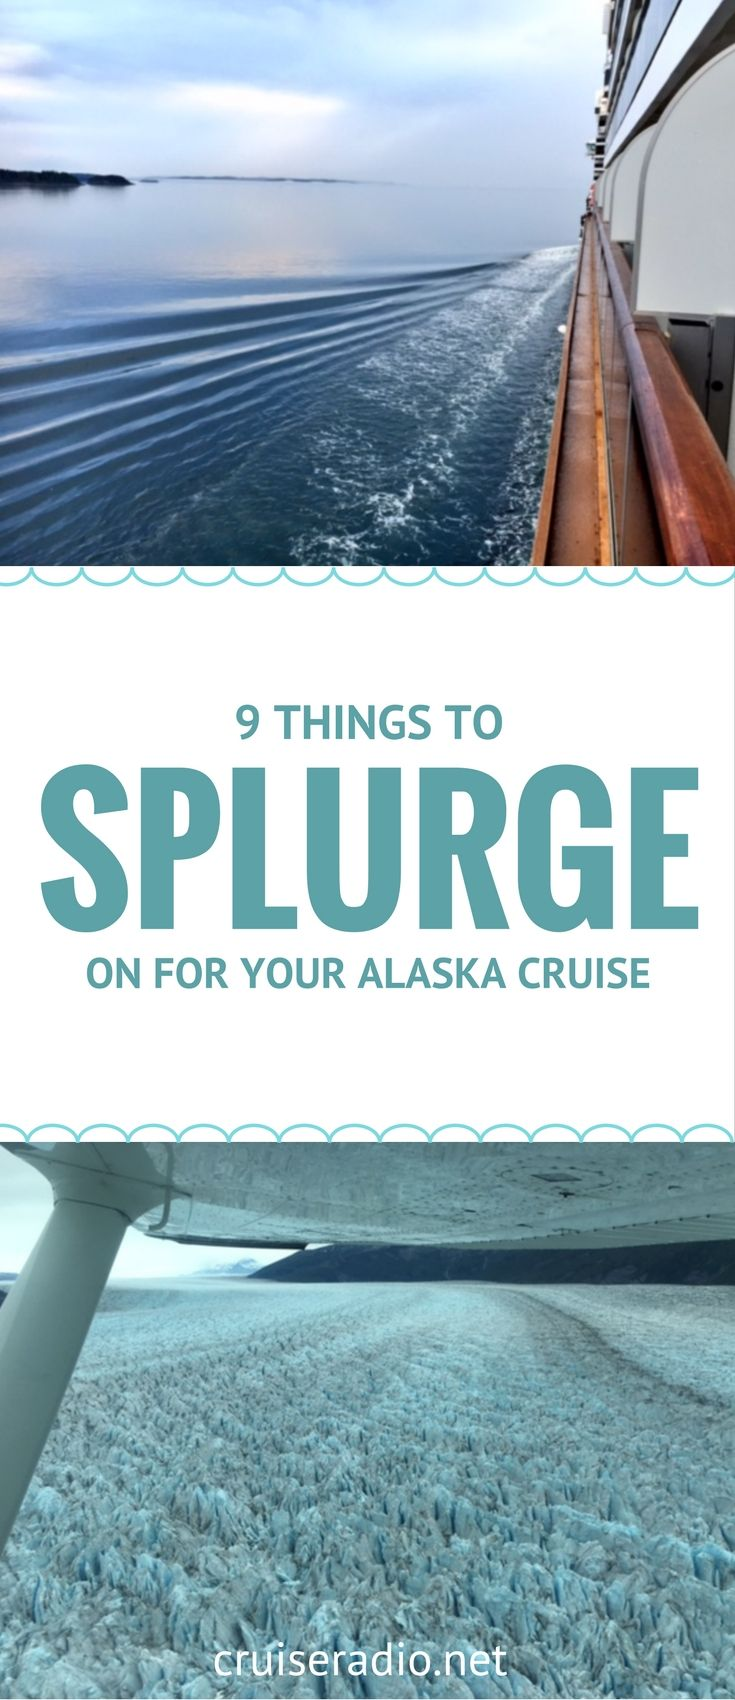 #alaska #cruise #vacation #travel #adventure